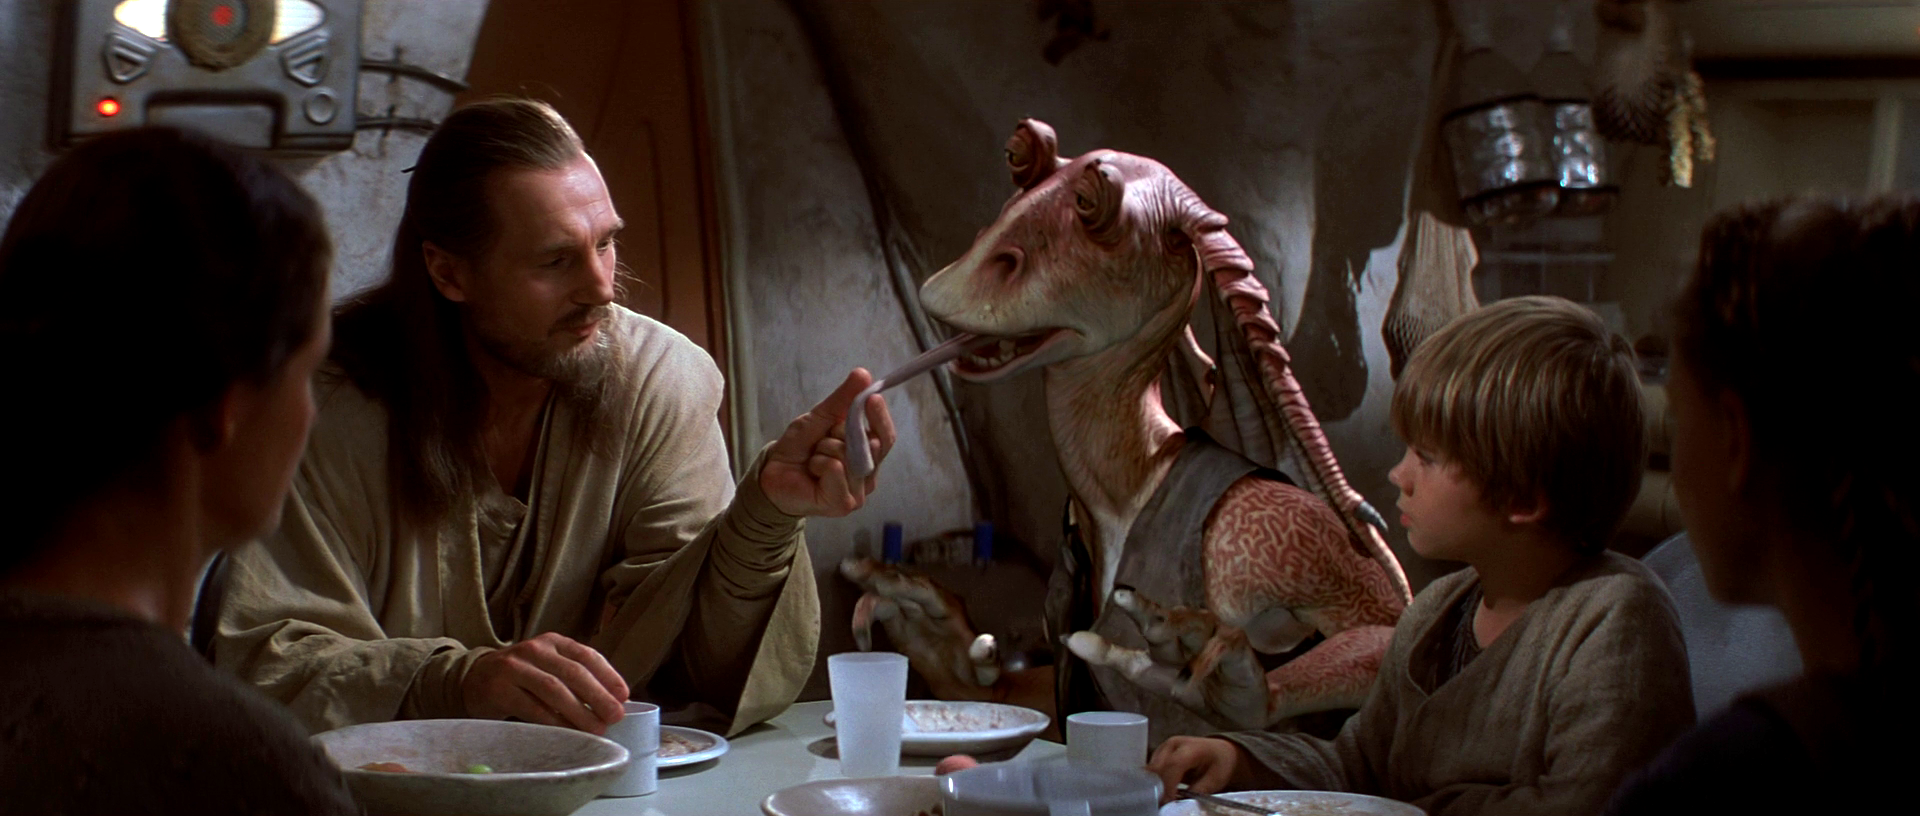 Jar Jar Binks Is Not The Worst Thing To Happen To Star Wars Polygon - 29 stupidest things happen 2014